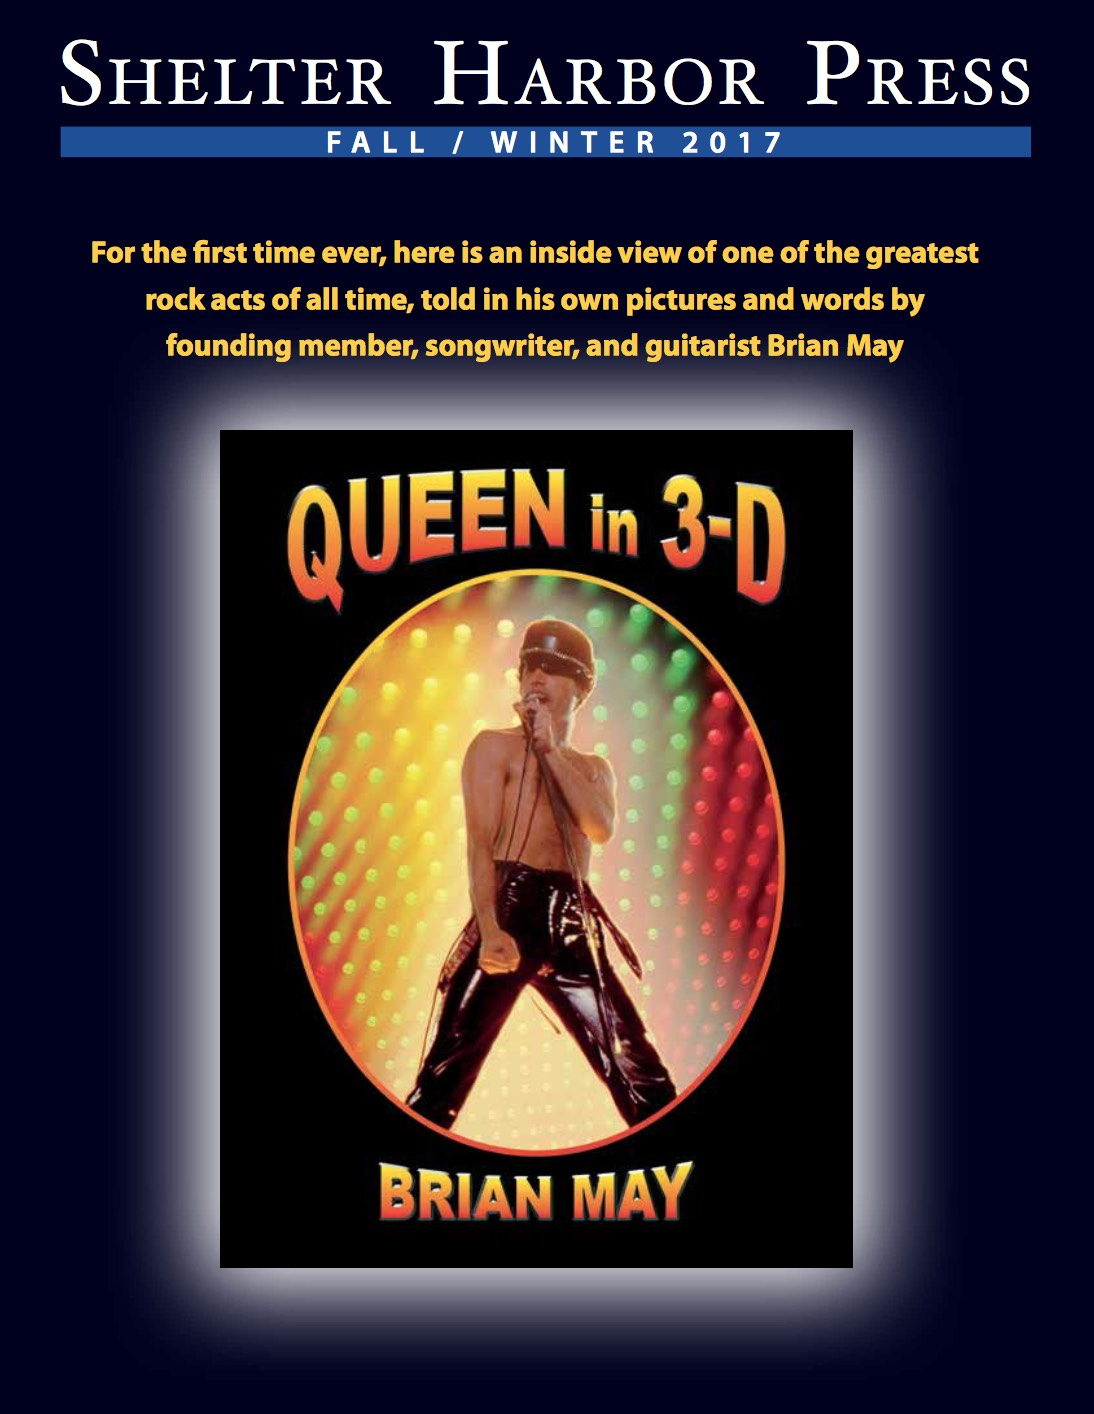 Queen in 3-D, Shelter Harbor Press